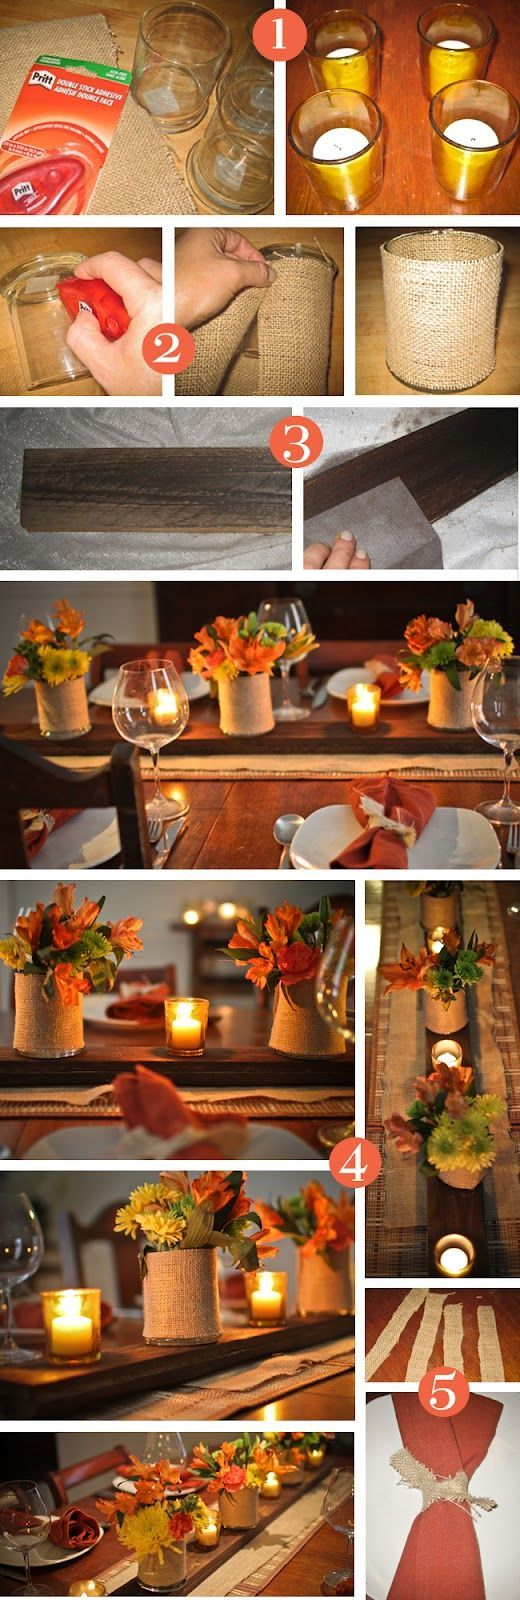 Diy kitchen decor crafts - Thanksgiving Fall Decor Easy Fall Table Decor Idea Using Materials You Already Have On Hand